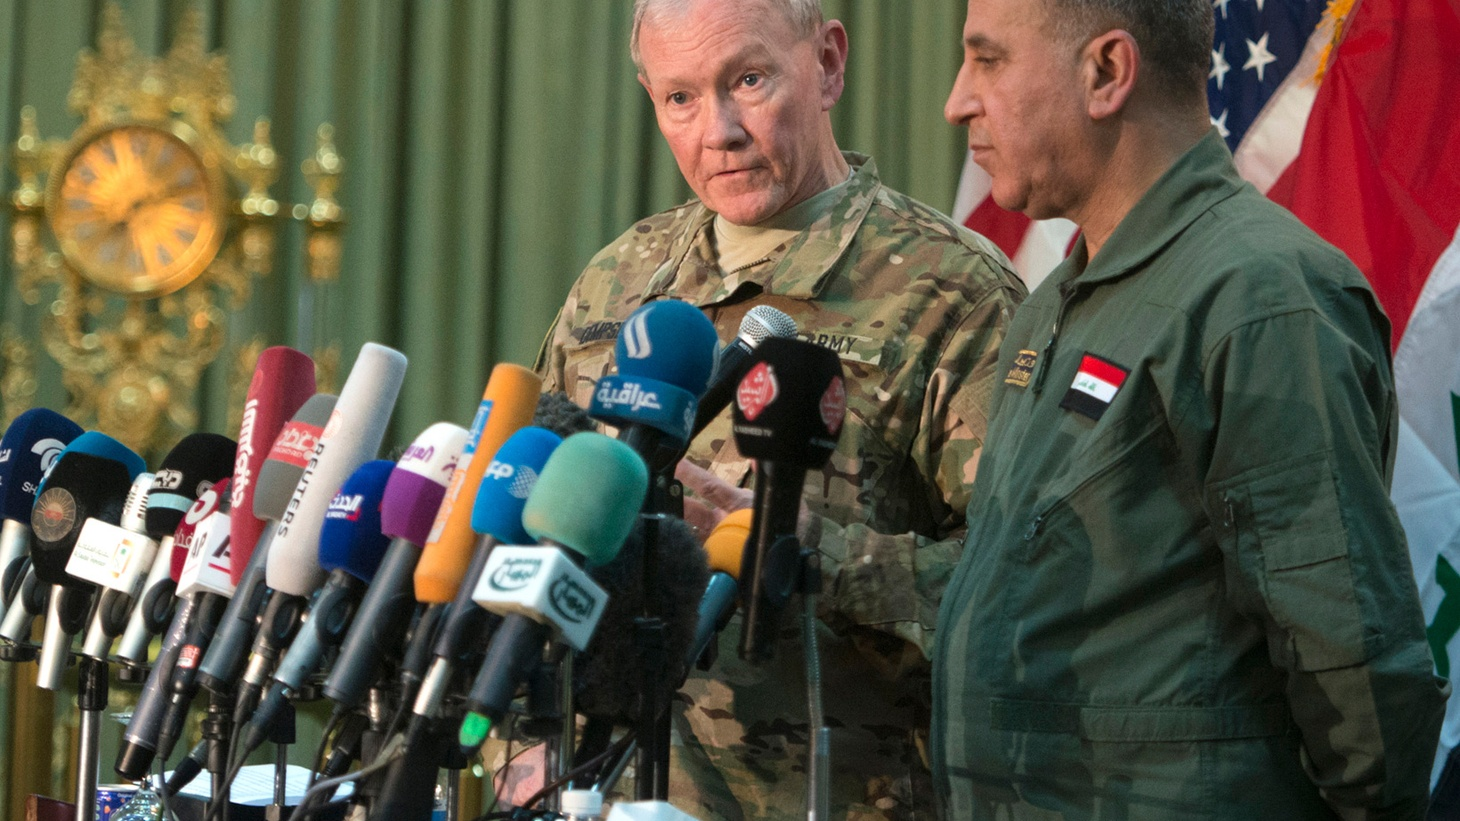 Iran is helping Iraqi forces re-take territory from the so-called Islamic State—but the US is not part of the action. We update the battle for the city of Tikrit, potential conflicts between Iraqi Sunnis and Shiites and the possibility of Iraq becoming an even more divided country.